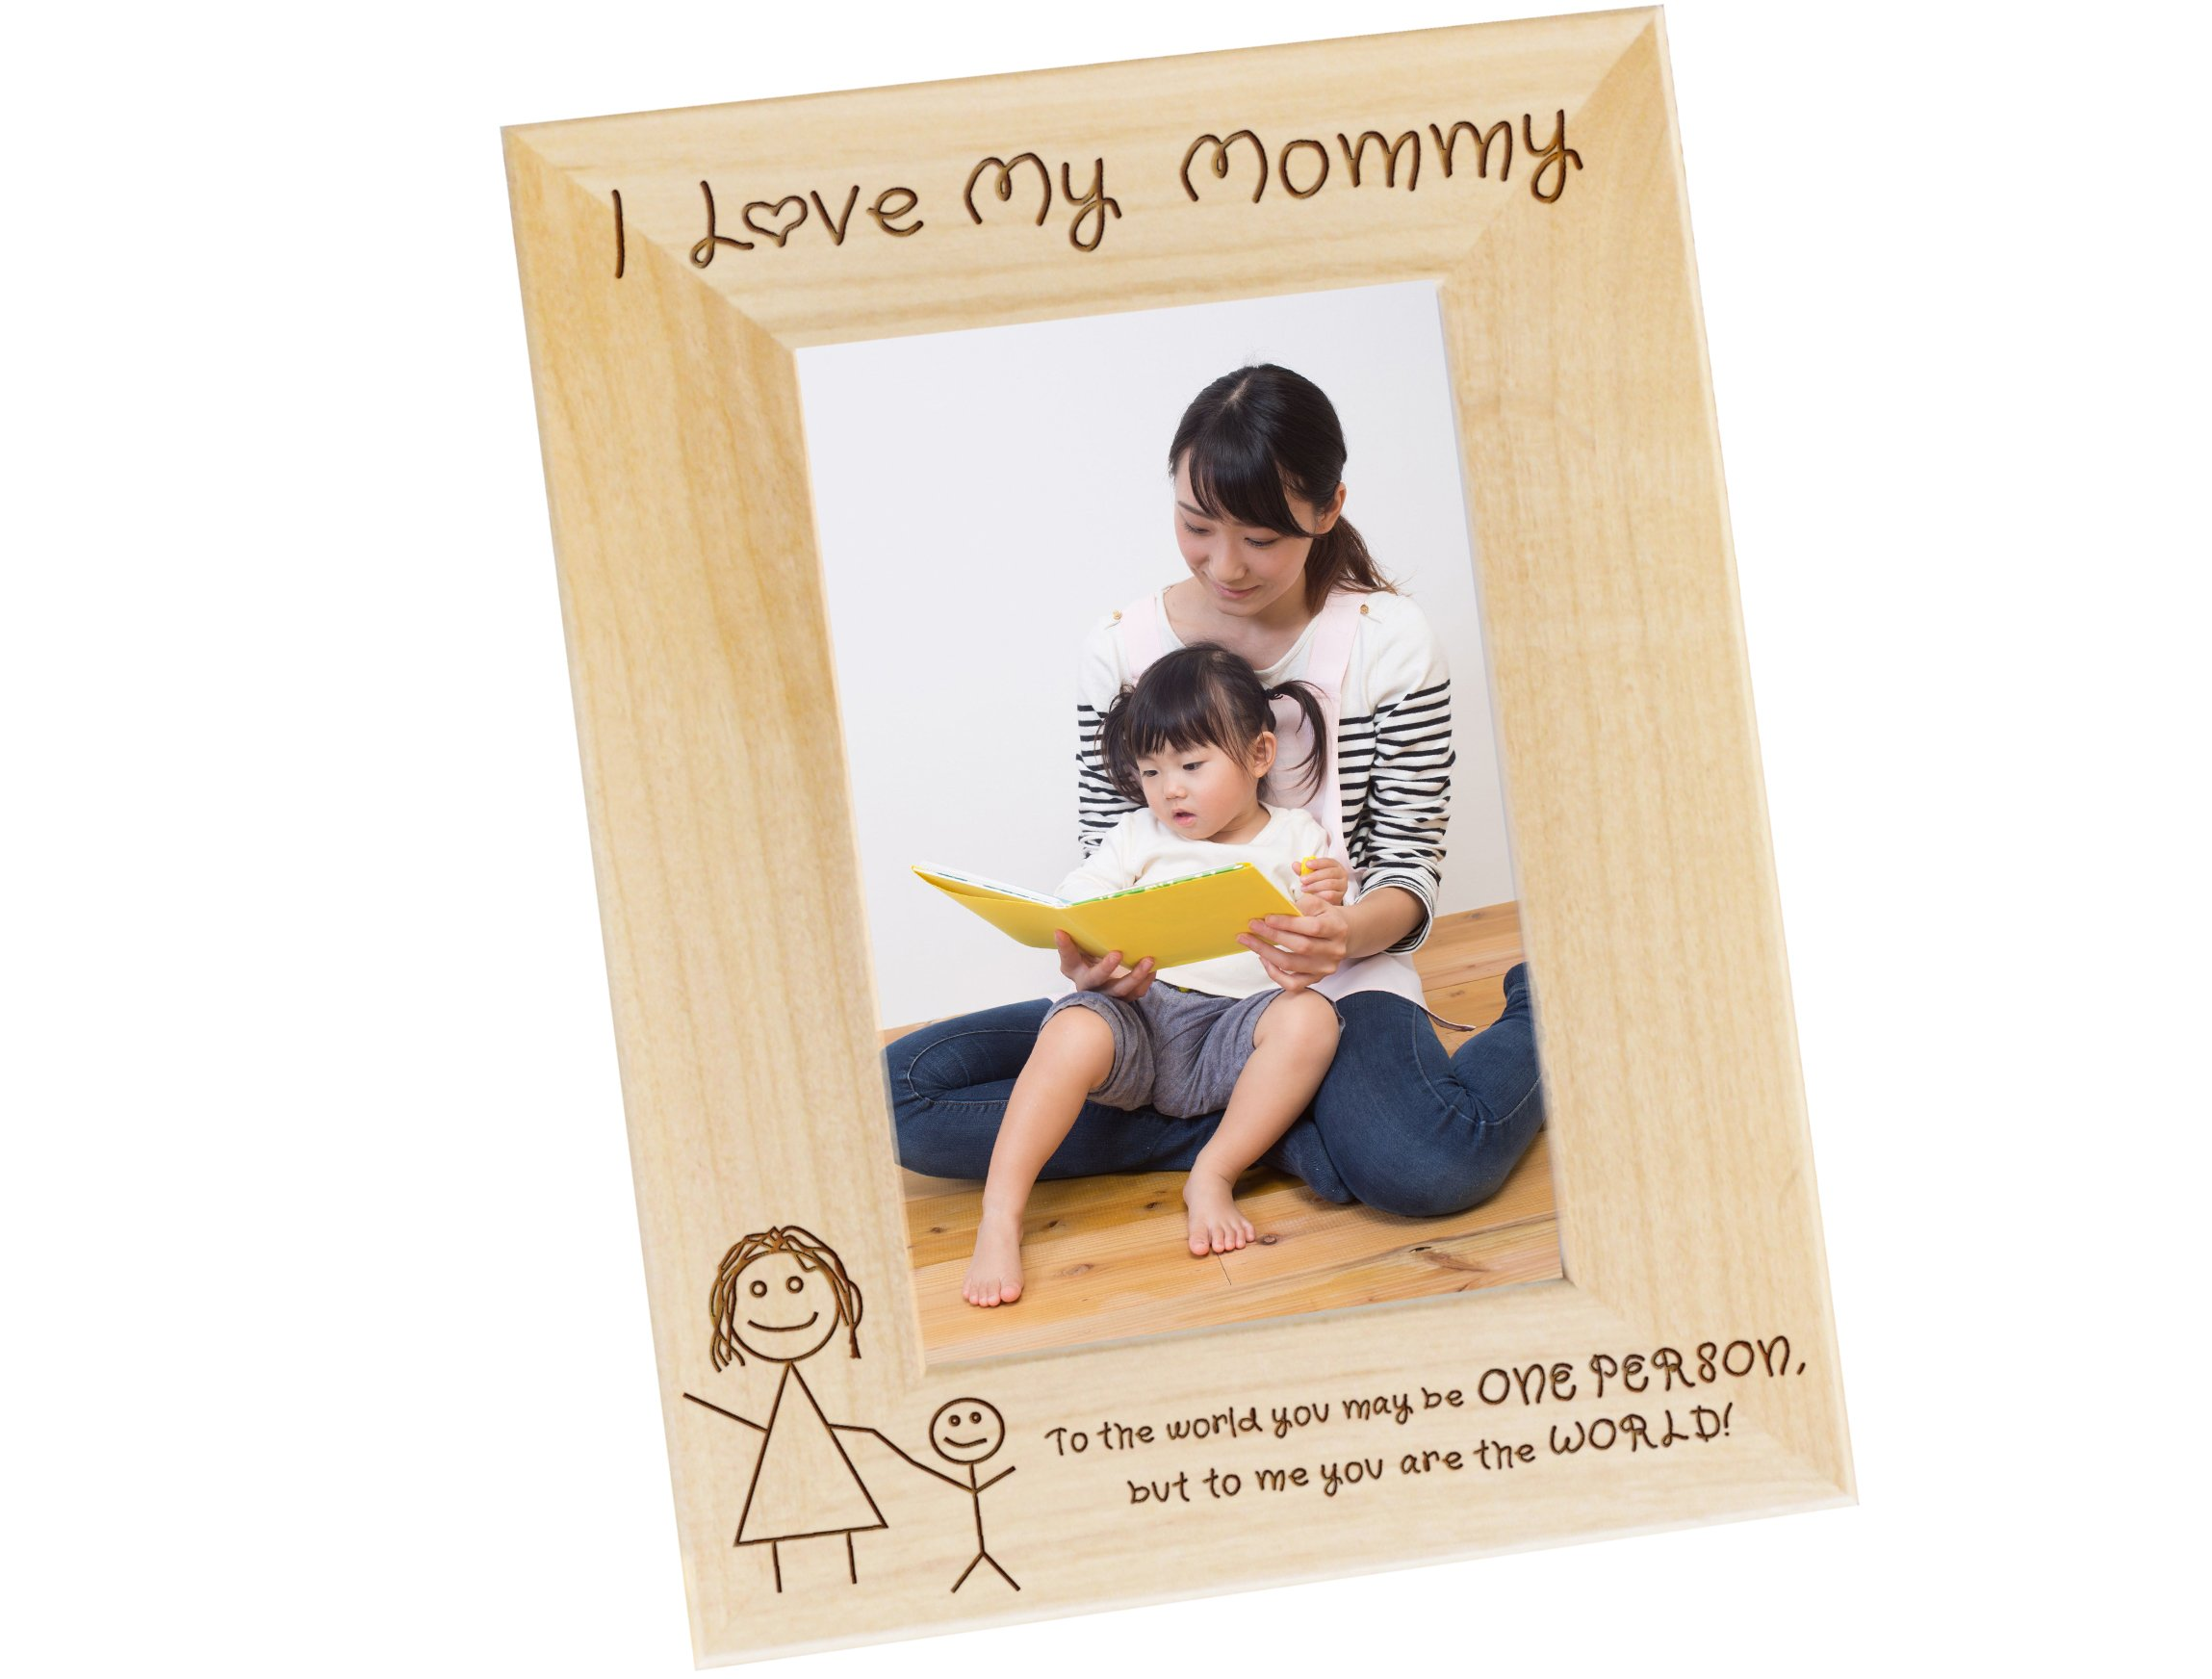 Frederick Engraving I Love My Mommy 4x6 Wood Photo Frame, Moms Birthday Present, Gifts for Mom From Kids, WF31 (4 x 6 - Vertical)